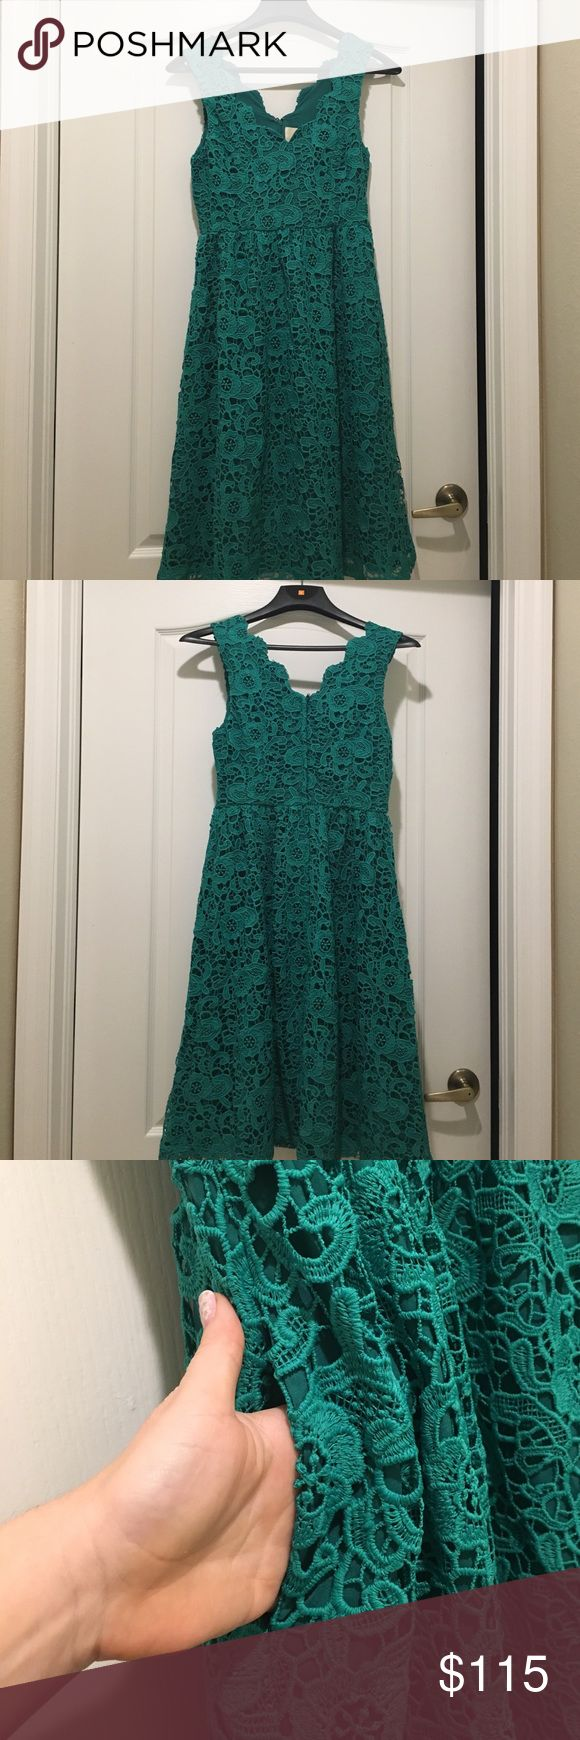 """Look at the Bridesmaid Side, ModCloth, Emerald NWOT lace dress in a beautiful emerald green, with scalloped details at neckline. Tea length, A-line. Pocket details. Size medium, fits best for size 6/8. ModCloth Dresses Wedding"